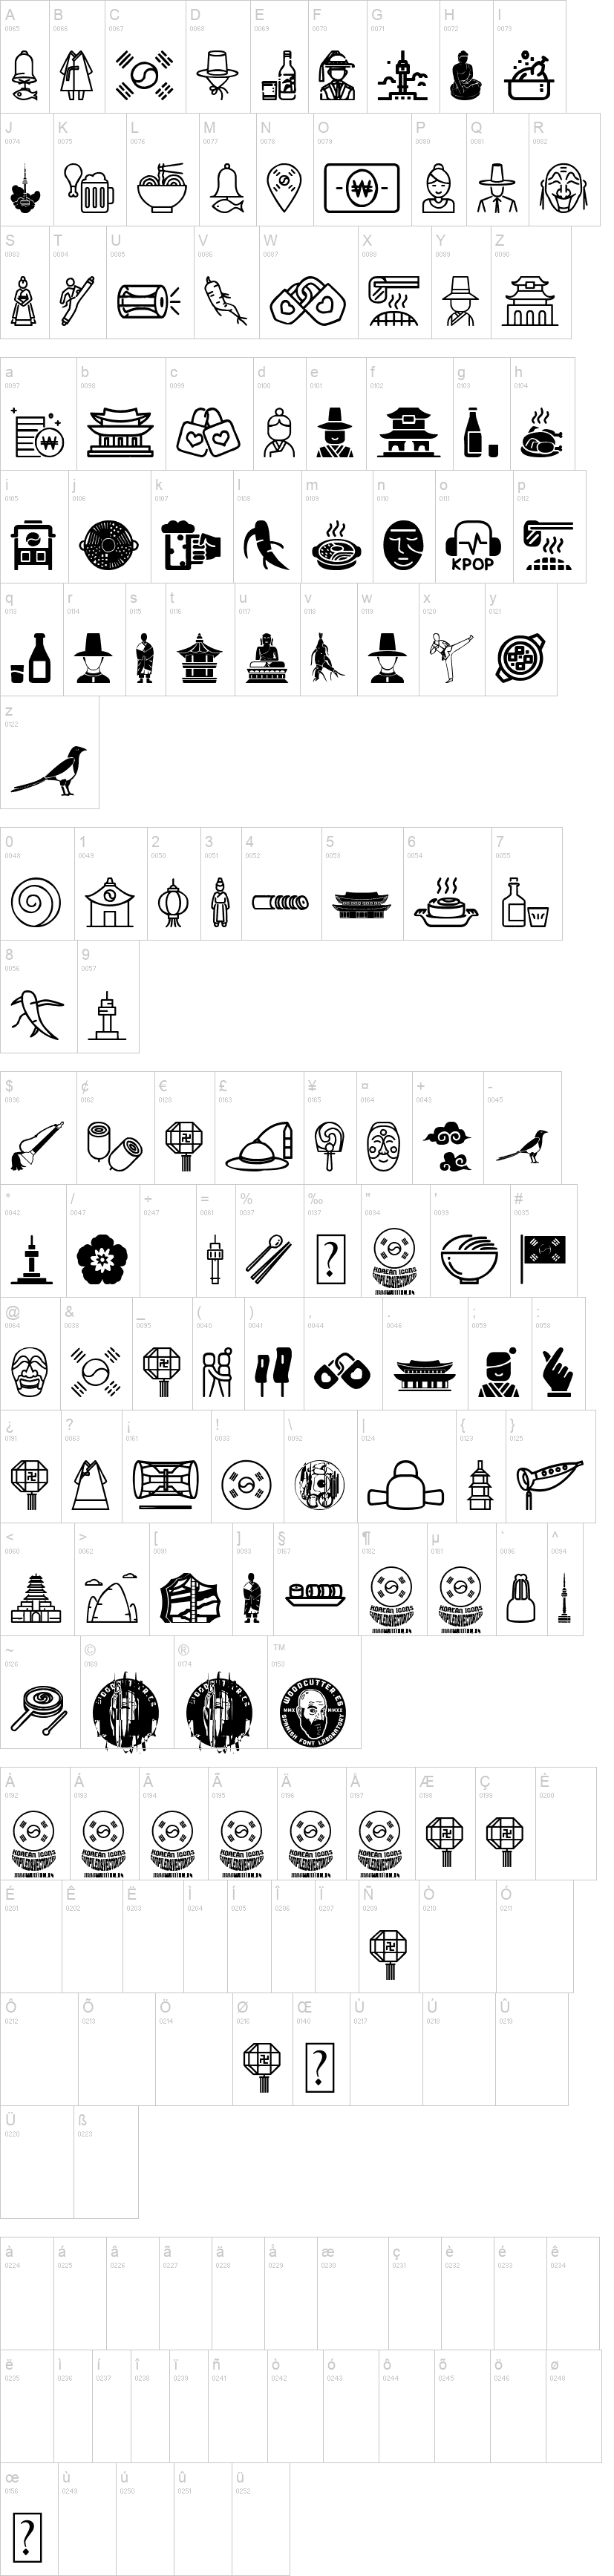 Korean Icons